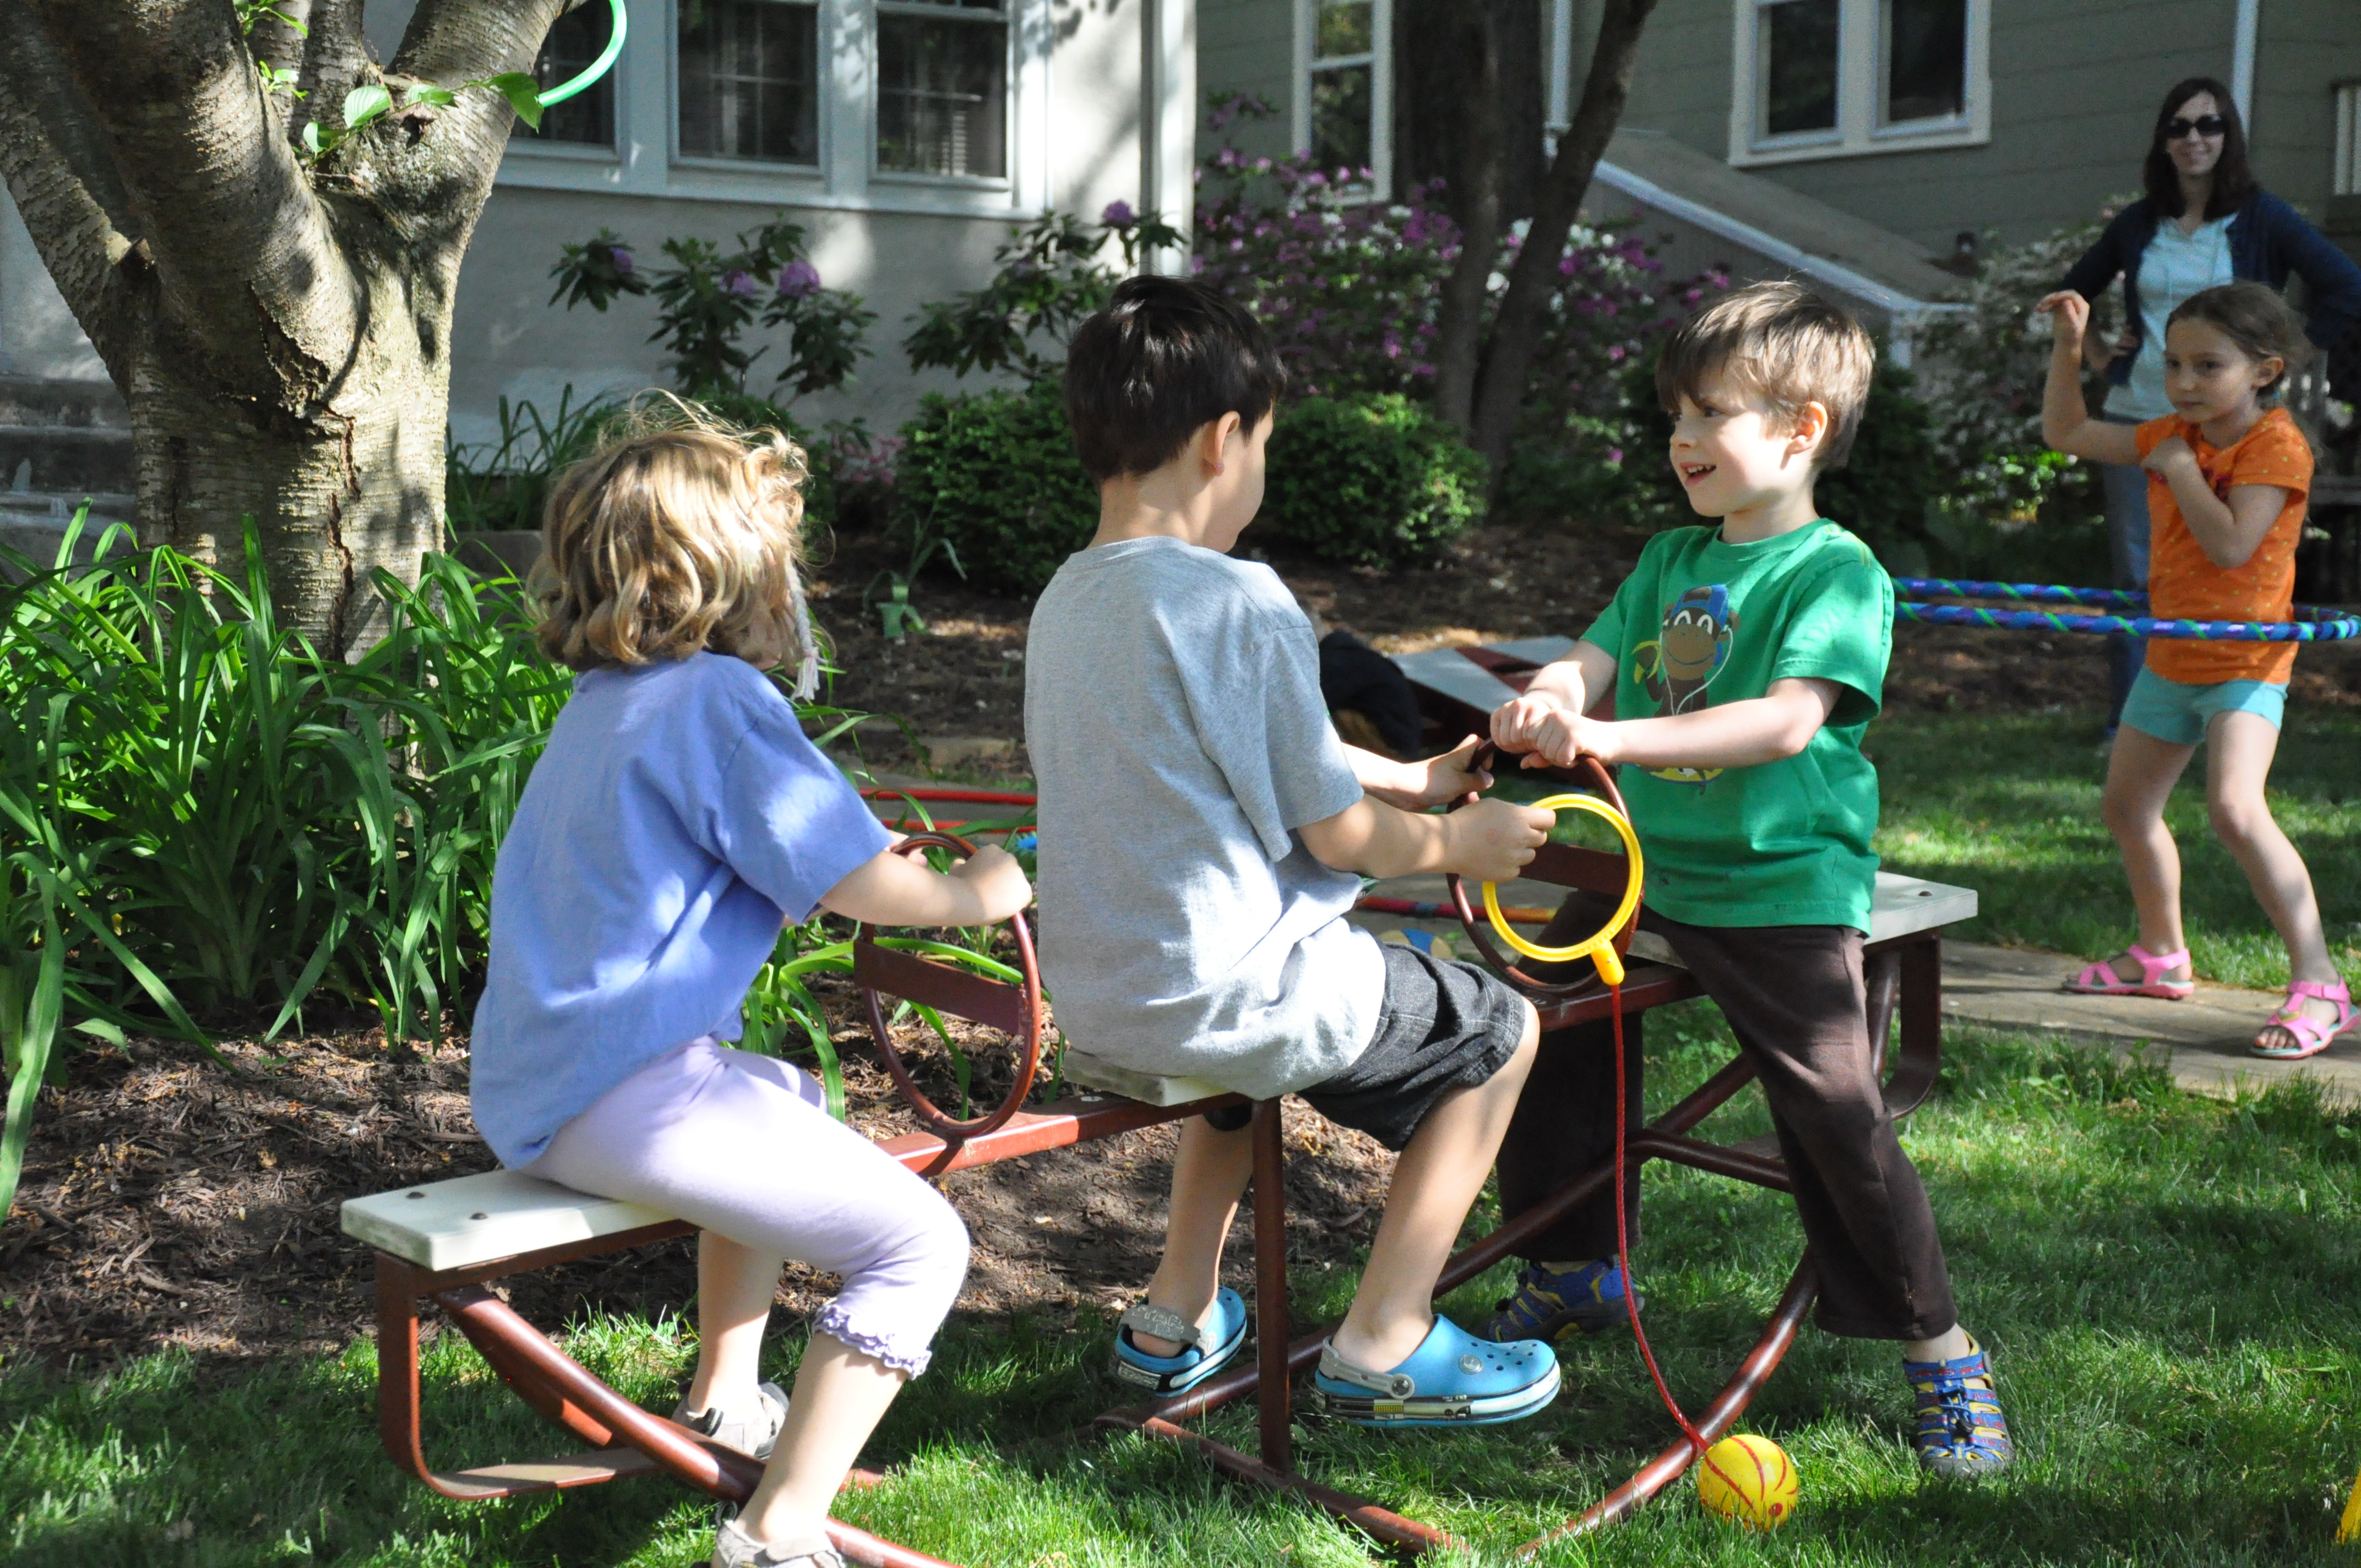 Promoting play: The importance of a spontaneous summer